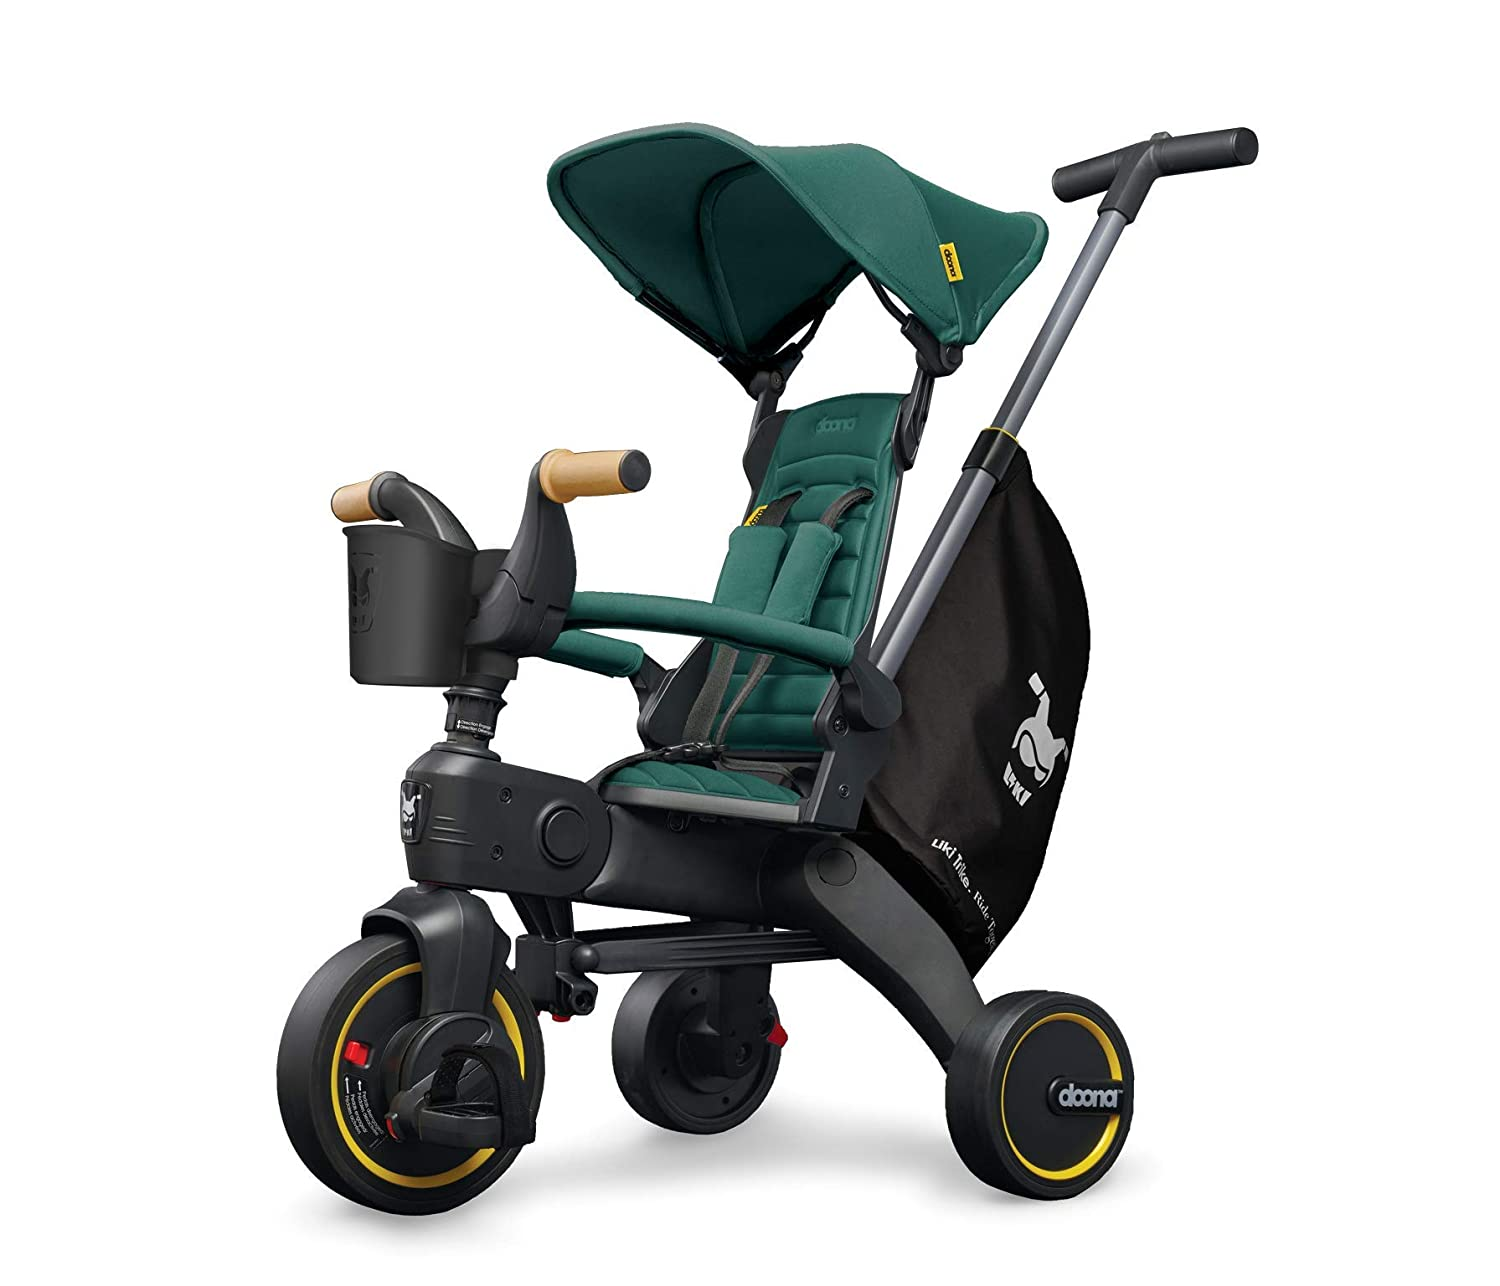 Doona Liki Trike S5 - Premium Foldable Push Trike and Kid's Tricycle for Ages 10 Months to 3 Years, Racing Green